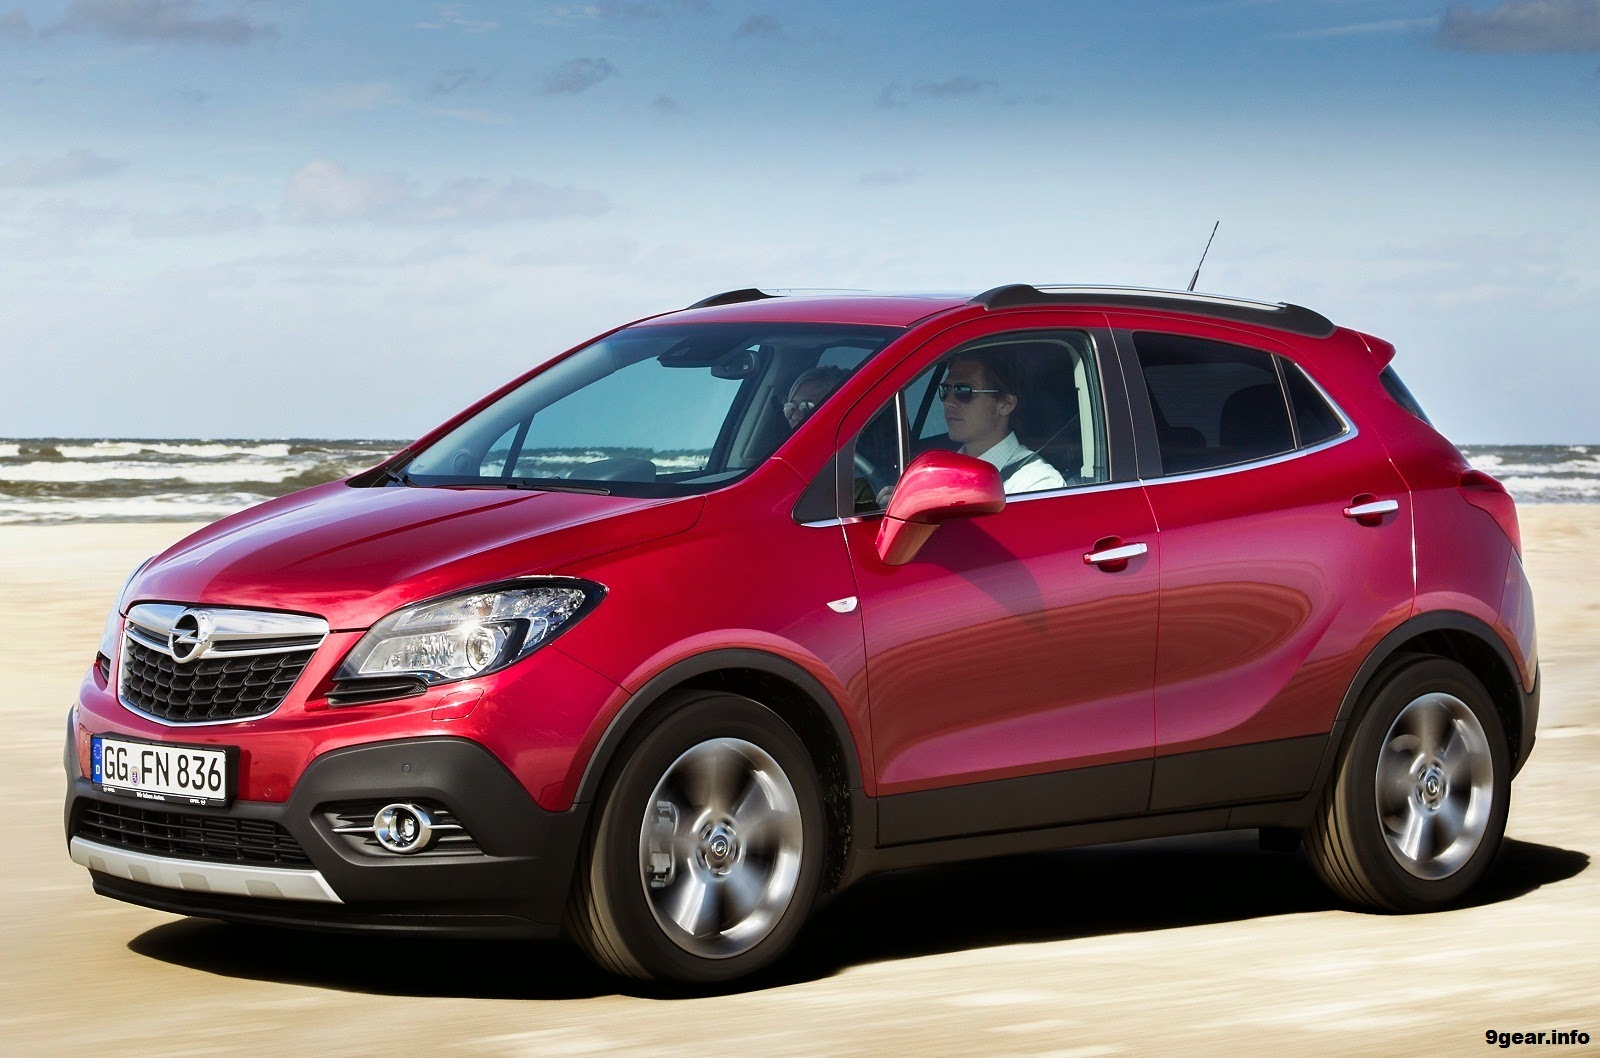 all wheel drive 2015 opel mokka car reviews new car pictures for 2018 2019. Black Bedroom Furniture Sets. Home Design Ideas